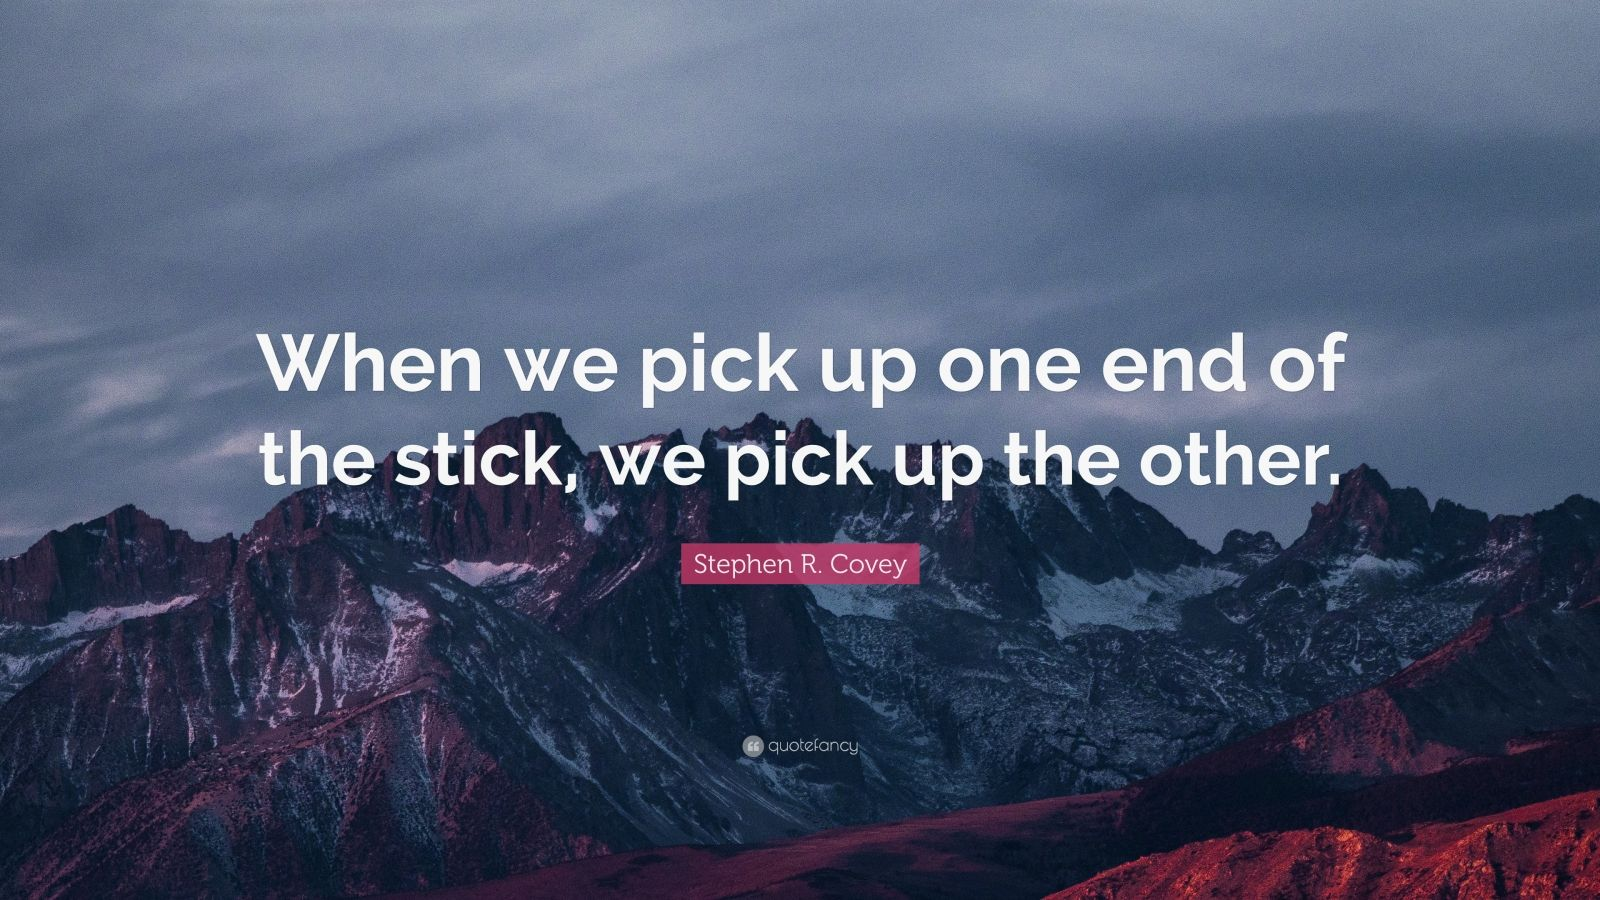 """Stephen R. Covey Quote: """"When we pick up one end of the stick, we pick up the other."""""""